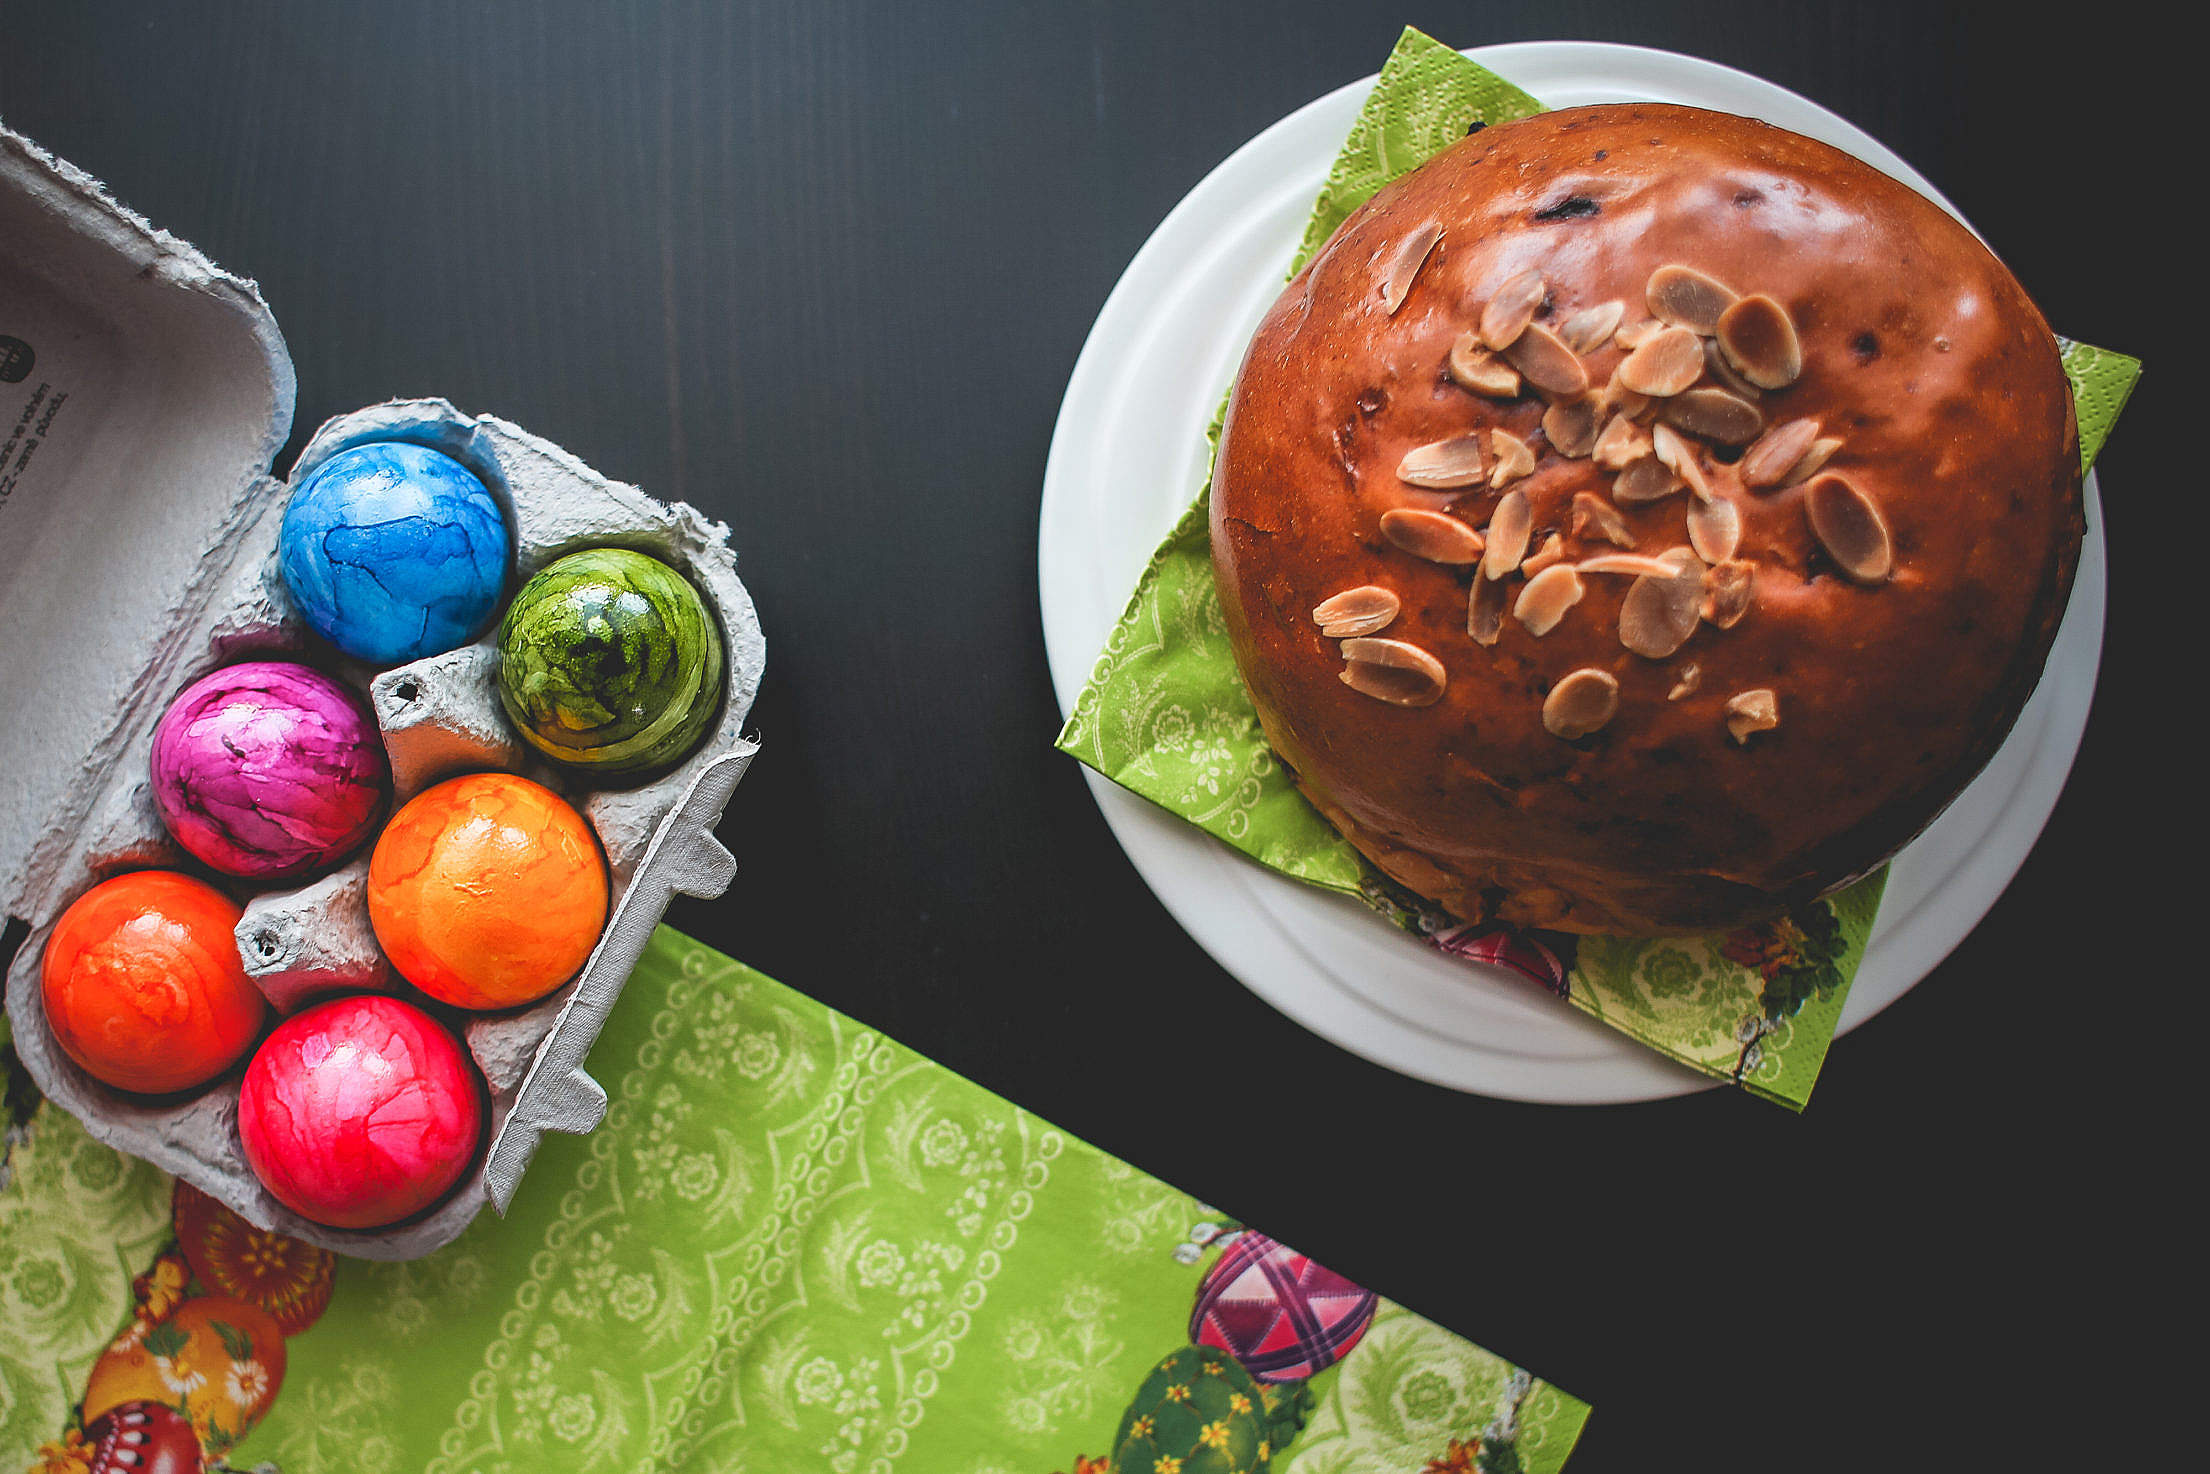 Easter Cake and Colorful Eggs: Happy Easter! Free Stock Photo